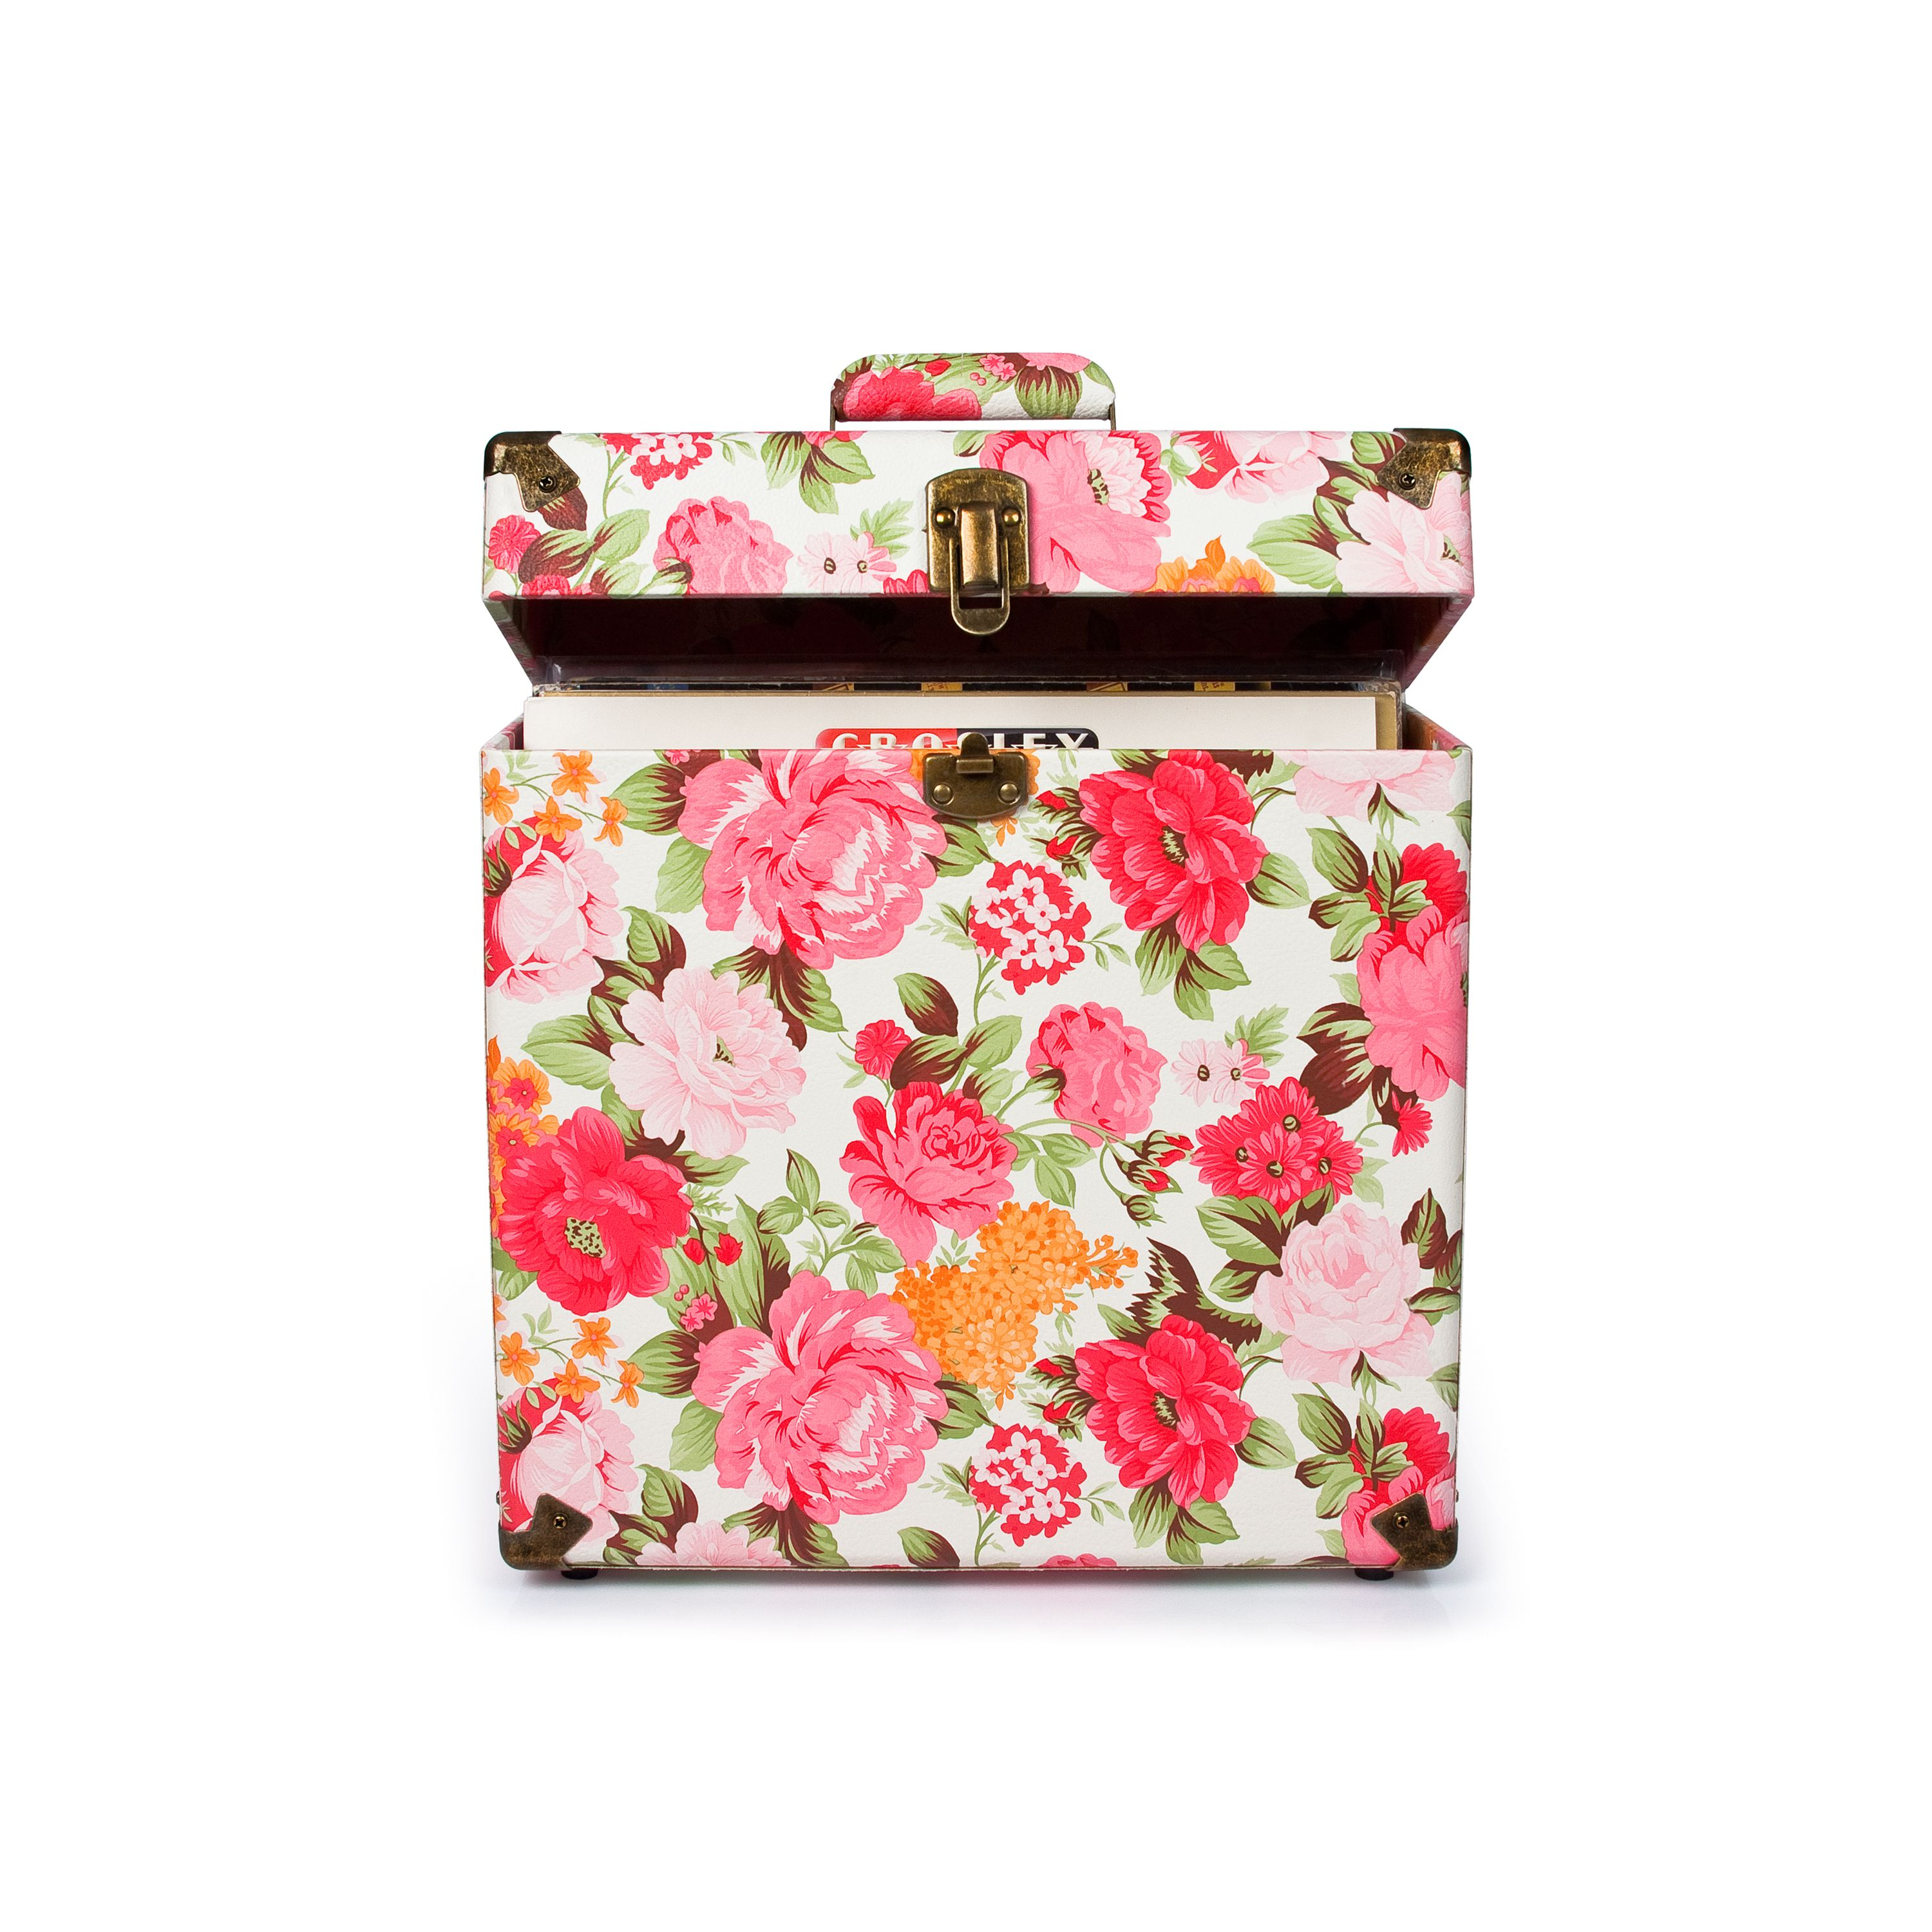 Crosley | Record Carrying Case - Floral #crosley #accessories #carryingcase #vinyl #floralprint